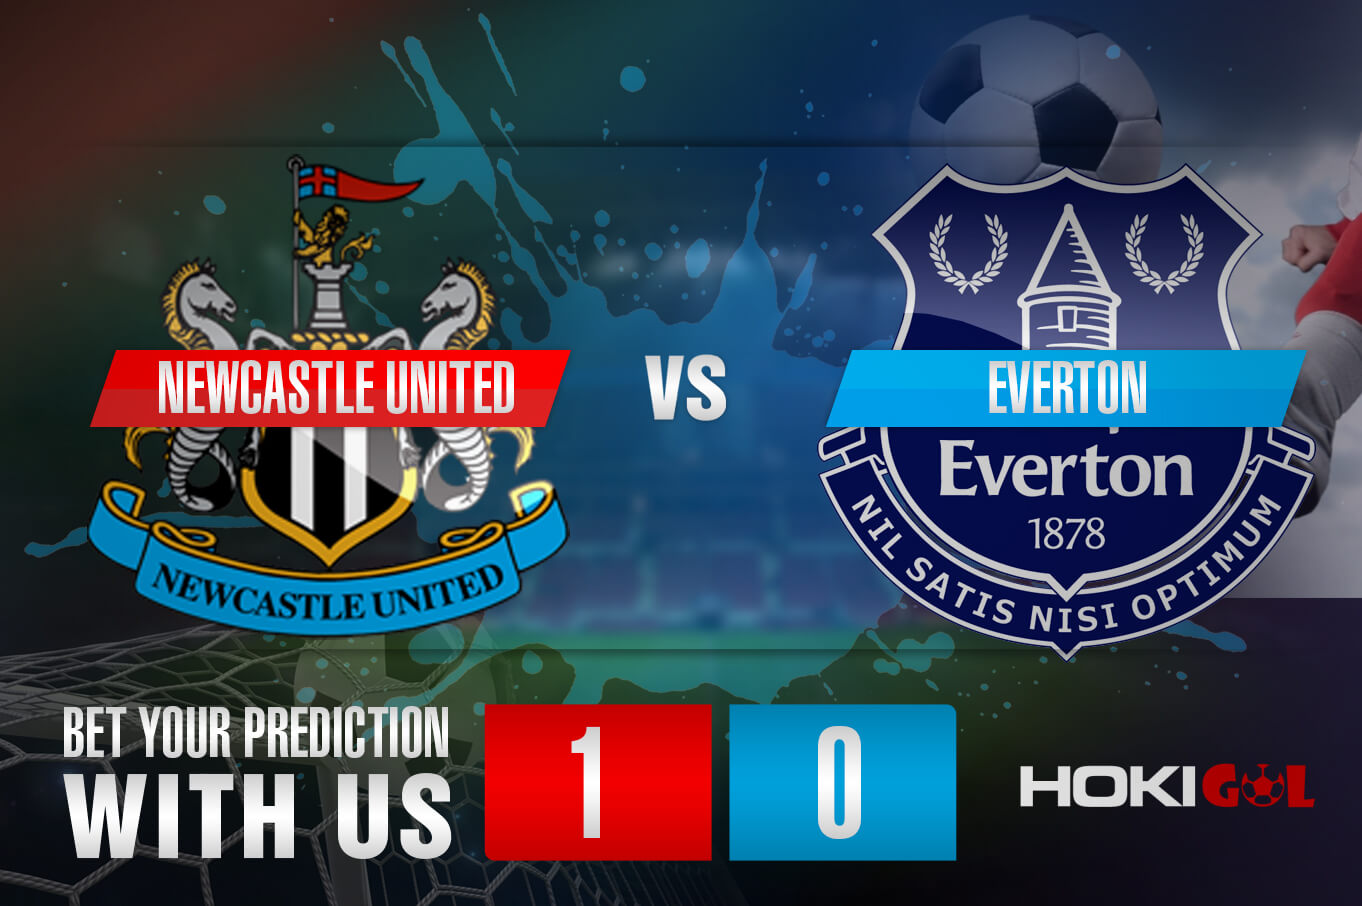 Prediksi Bola Newcastle United Vs Everton 1 November 2020